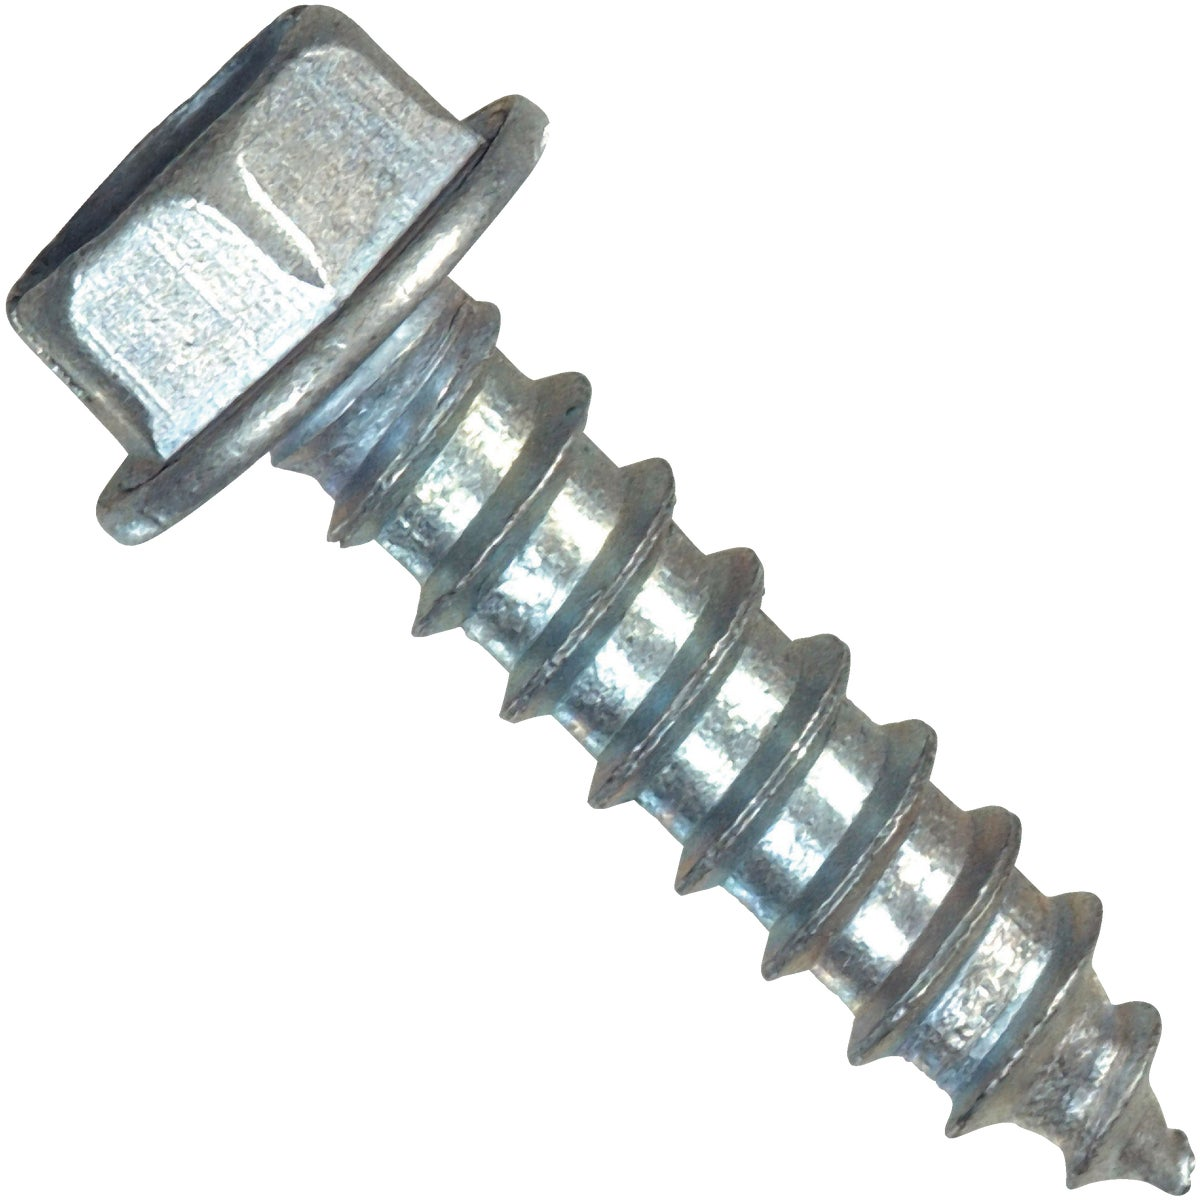 6X1 HWH SHT MTL SCREW - 70259 by Hillman Fastener